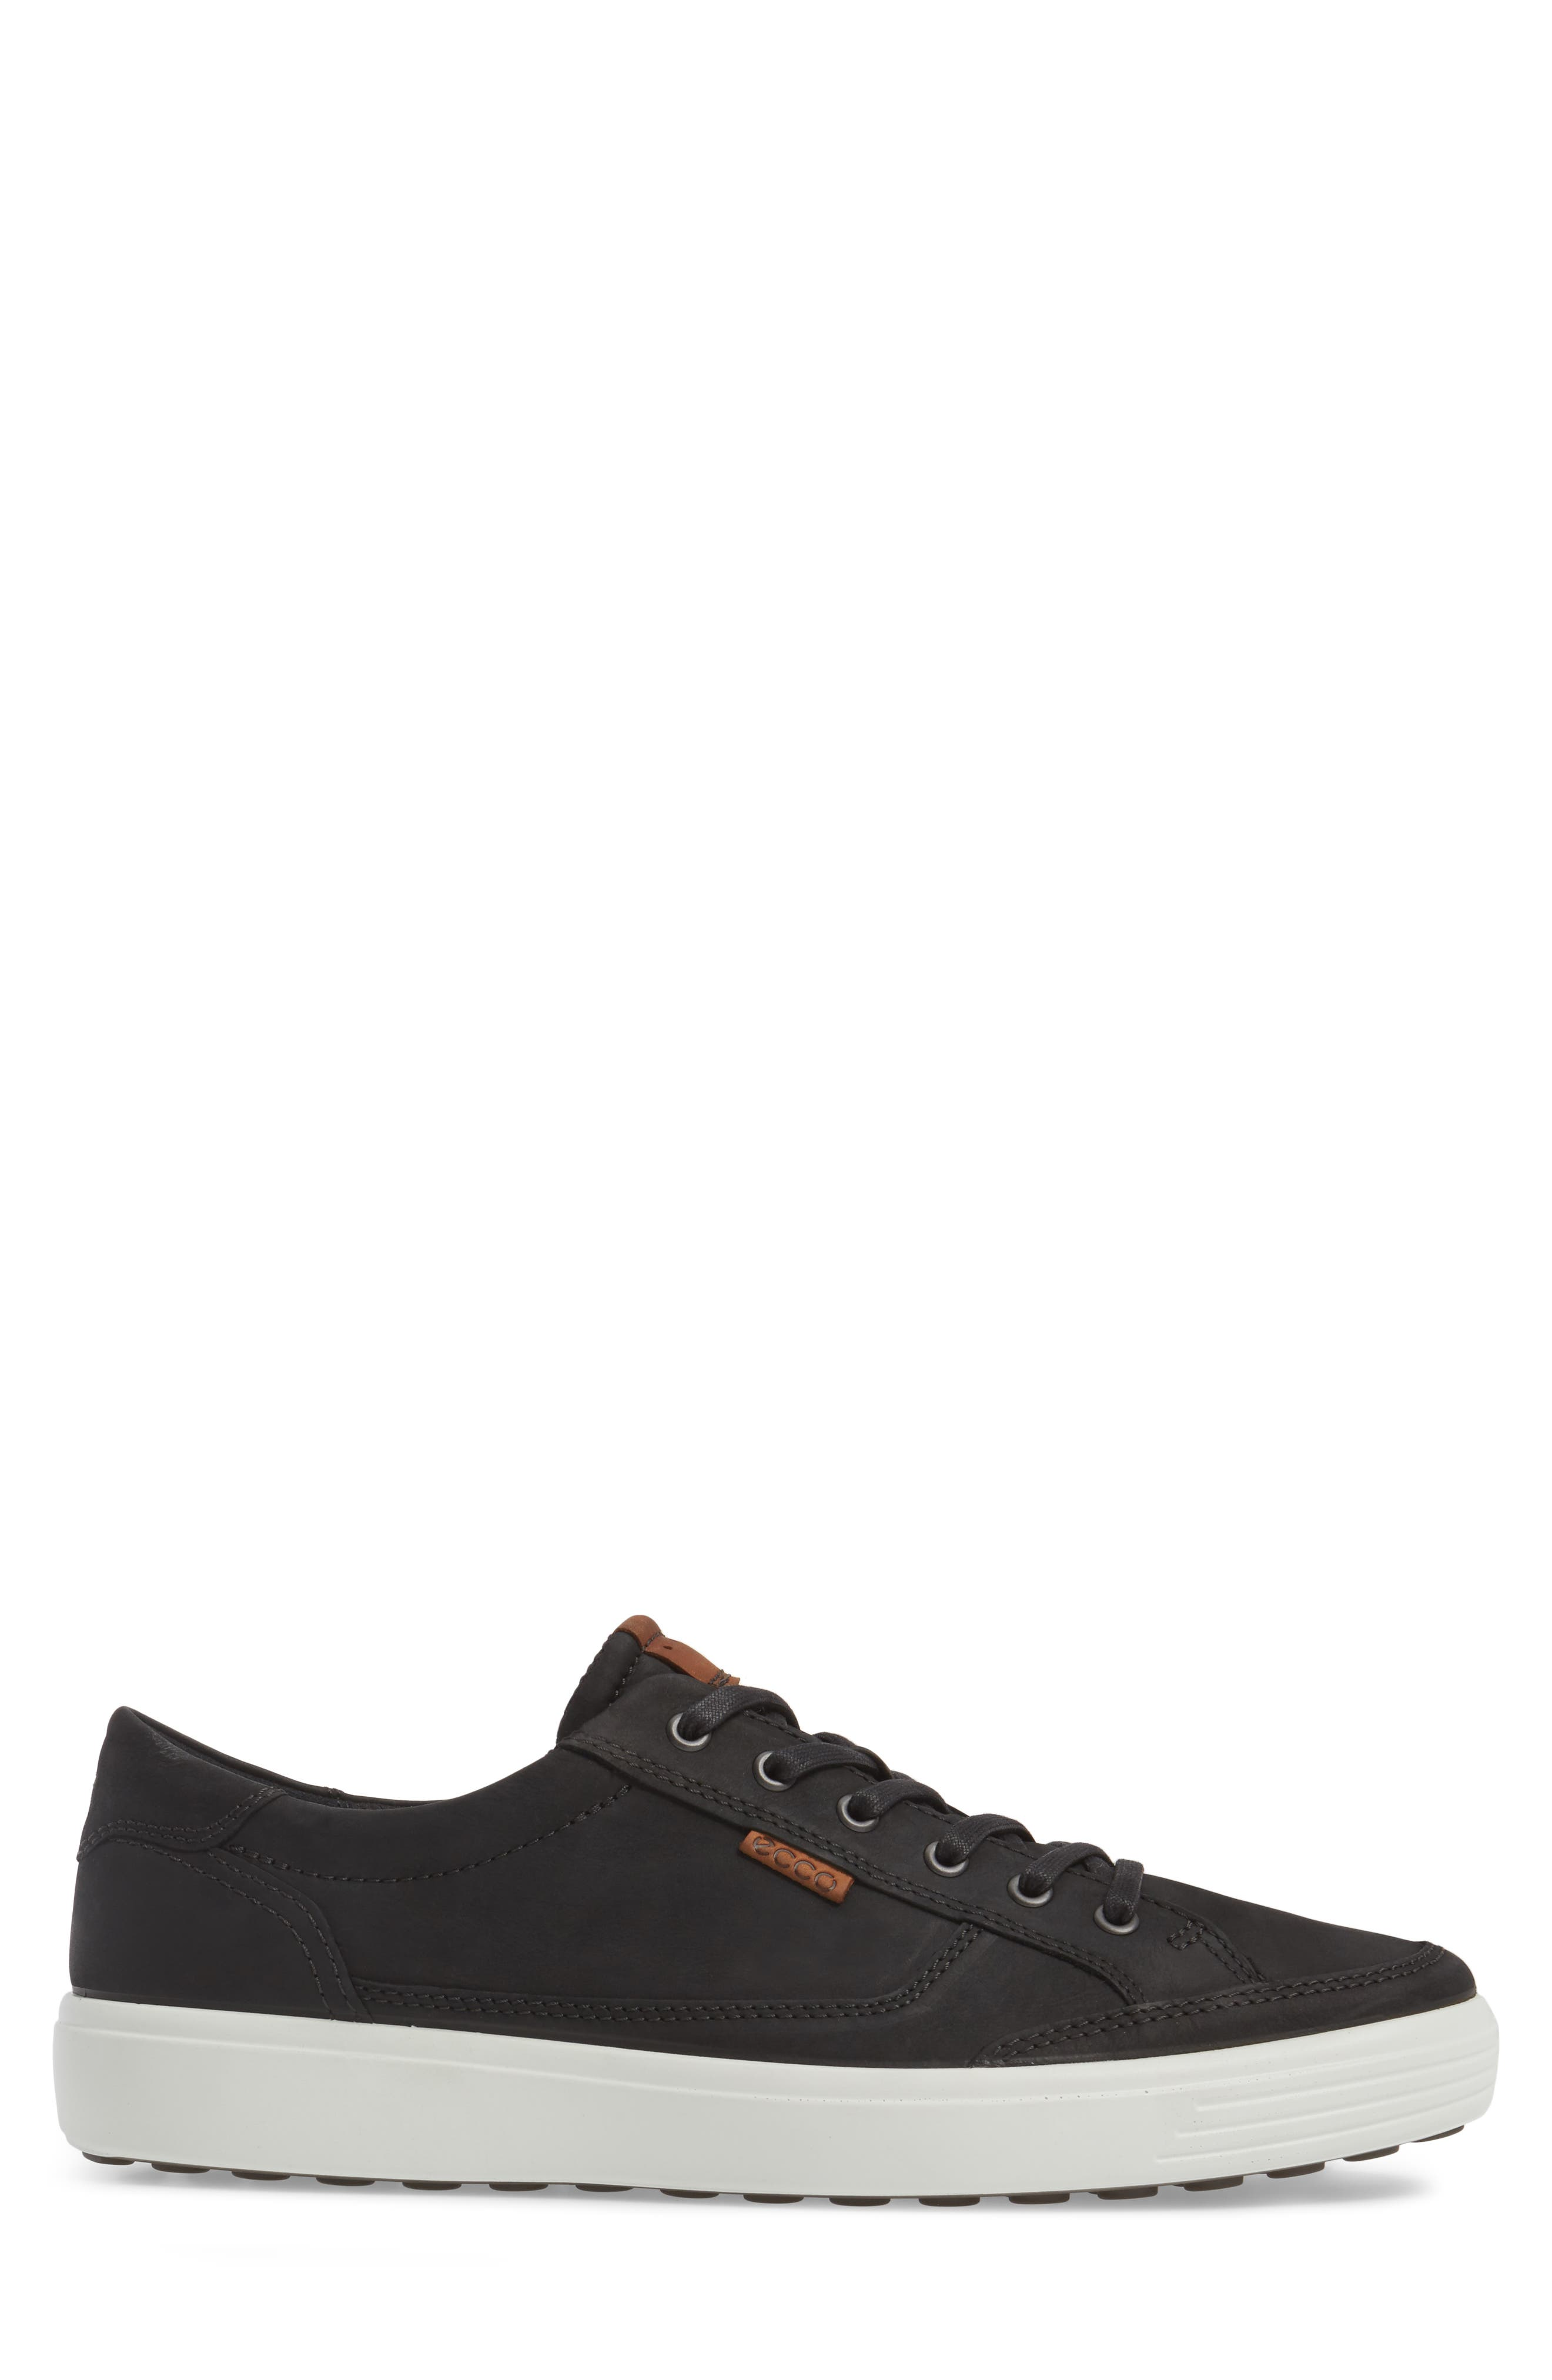 ECCO, Soft 7 Long Lace Sneaker, Alternate thumbnail 3, color, BLACK LEATHER